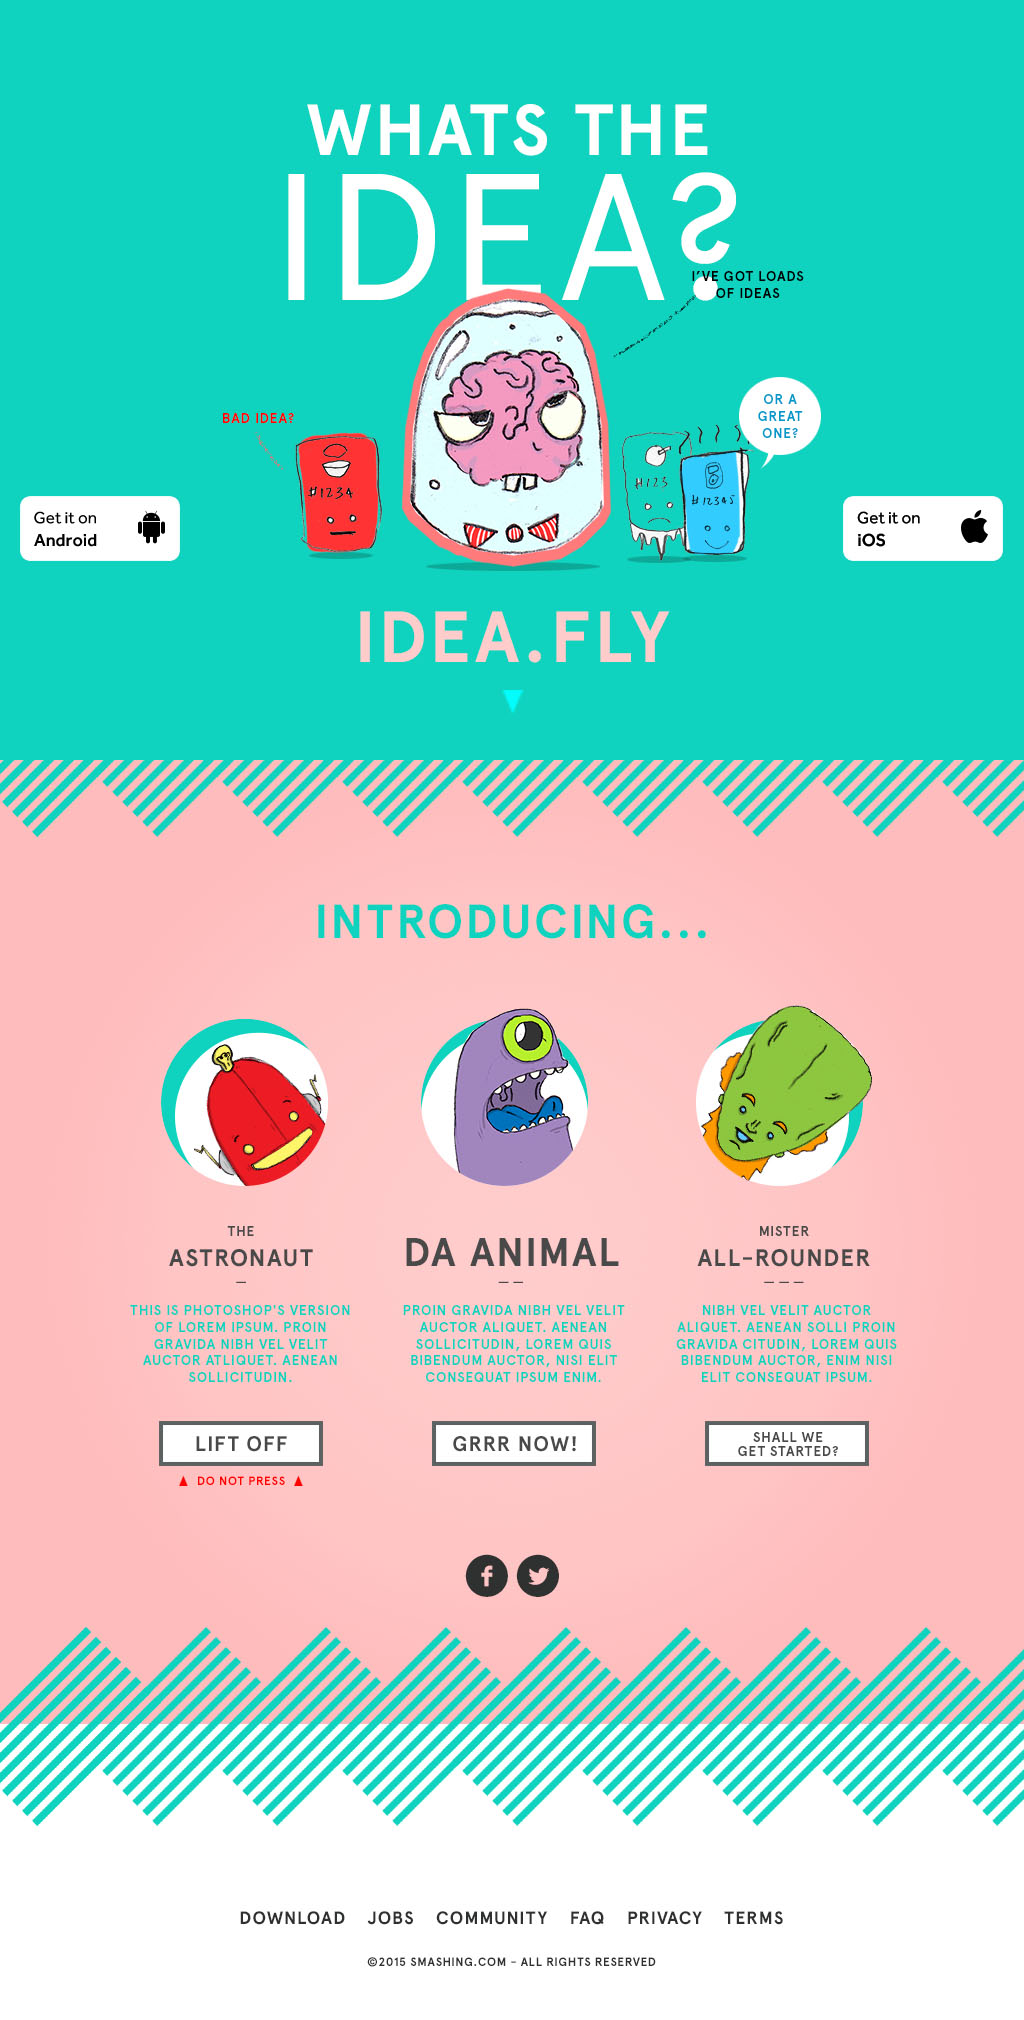 ideafly_characters_01 1 - Ideas For Graphic Design Projects